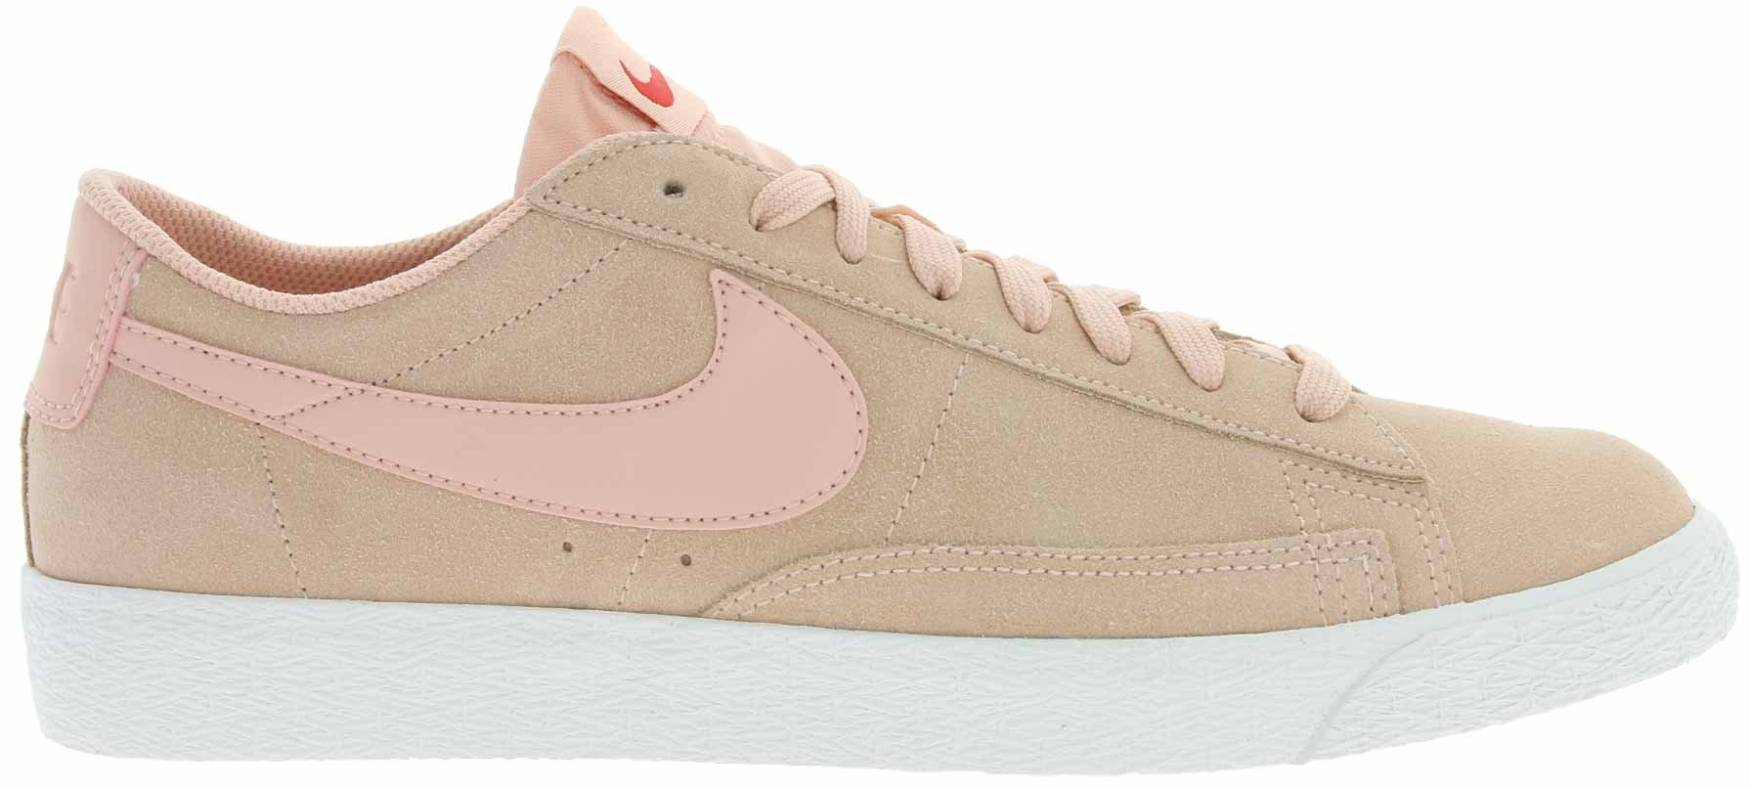 estudio Oponerse a Estado  Nike Blazer Low sneakers in 4 colors (only $52) | RunRepeat